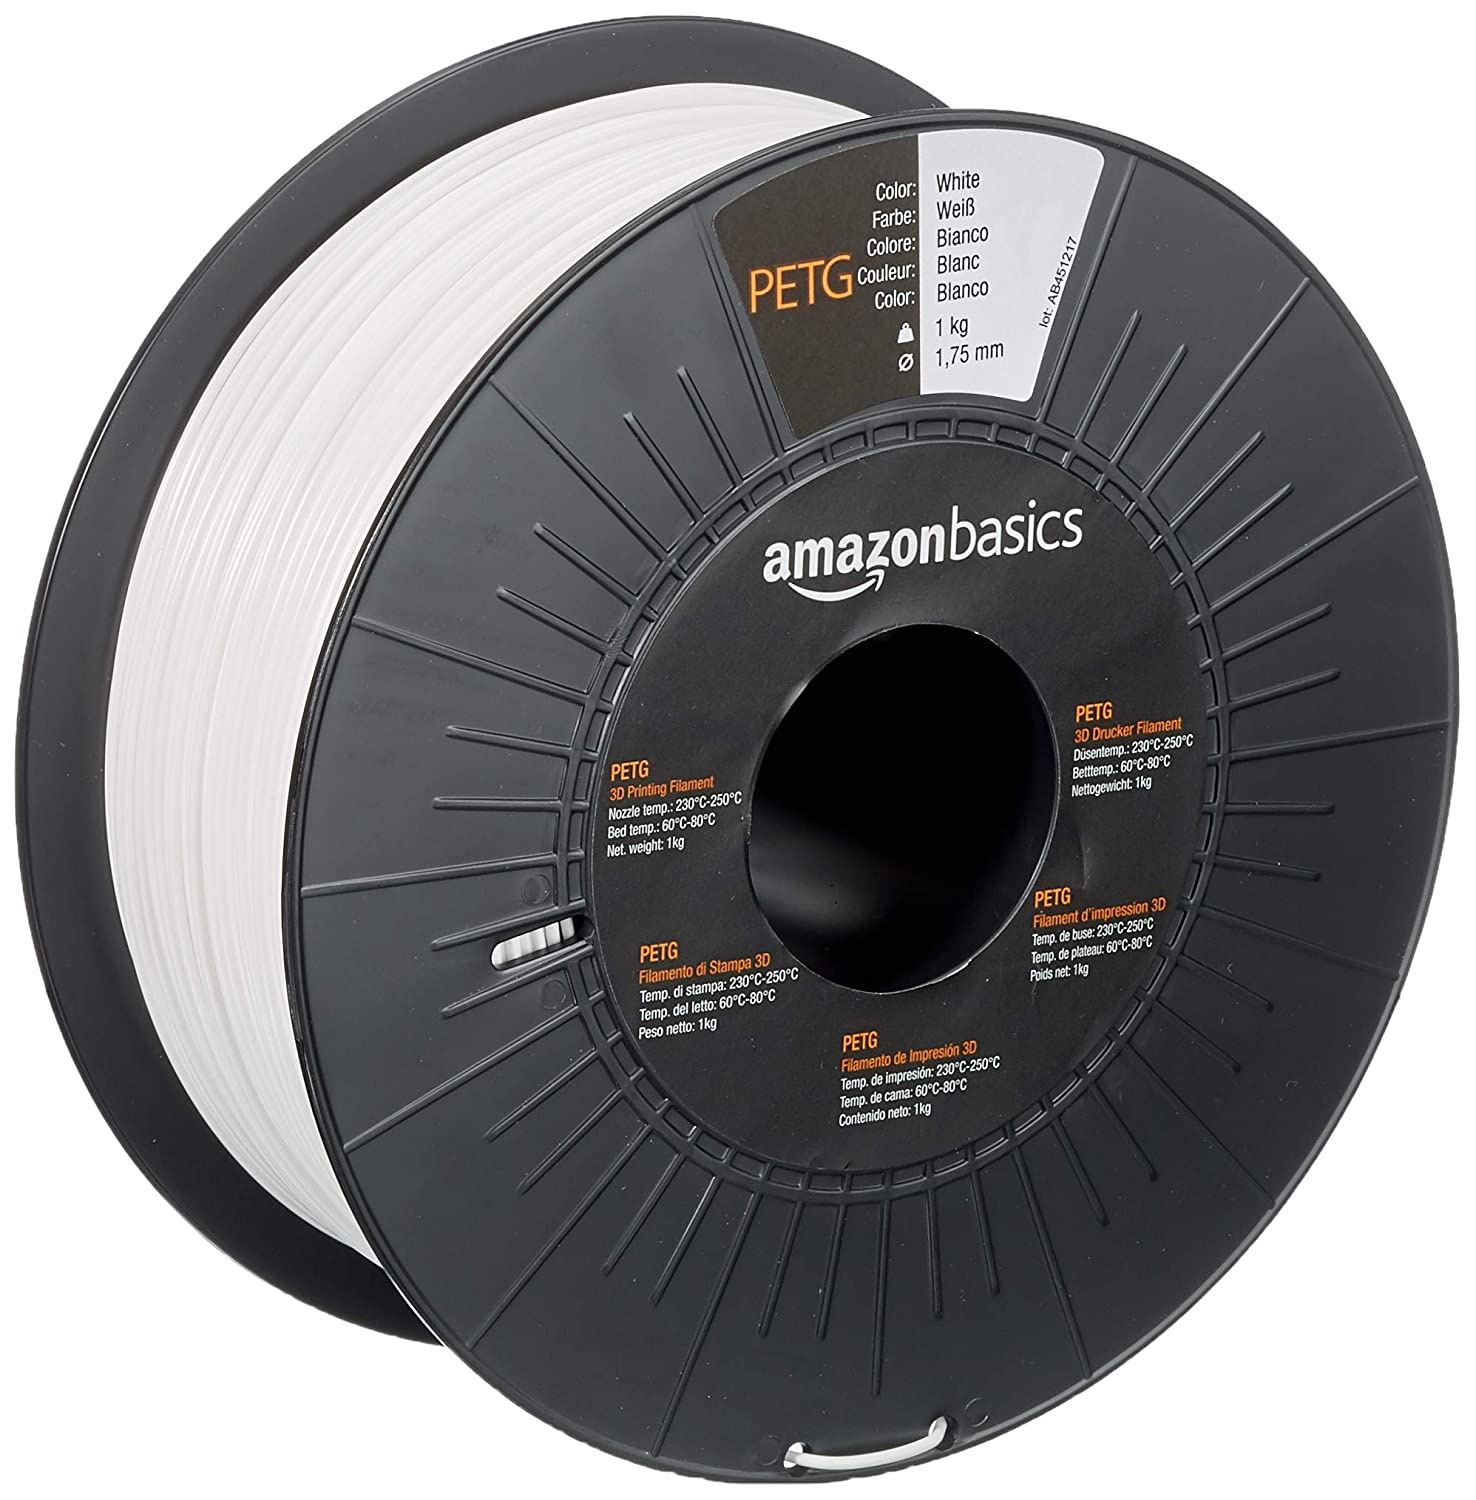 AmazonBasics PETG 3D Printer Filament, 1.75mm, White, 1 kg Spool